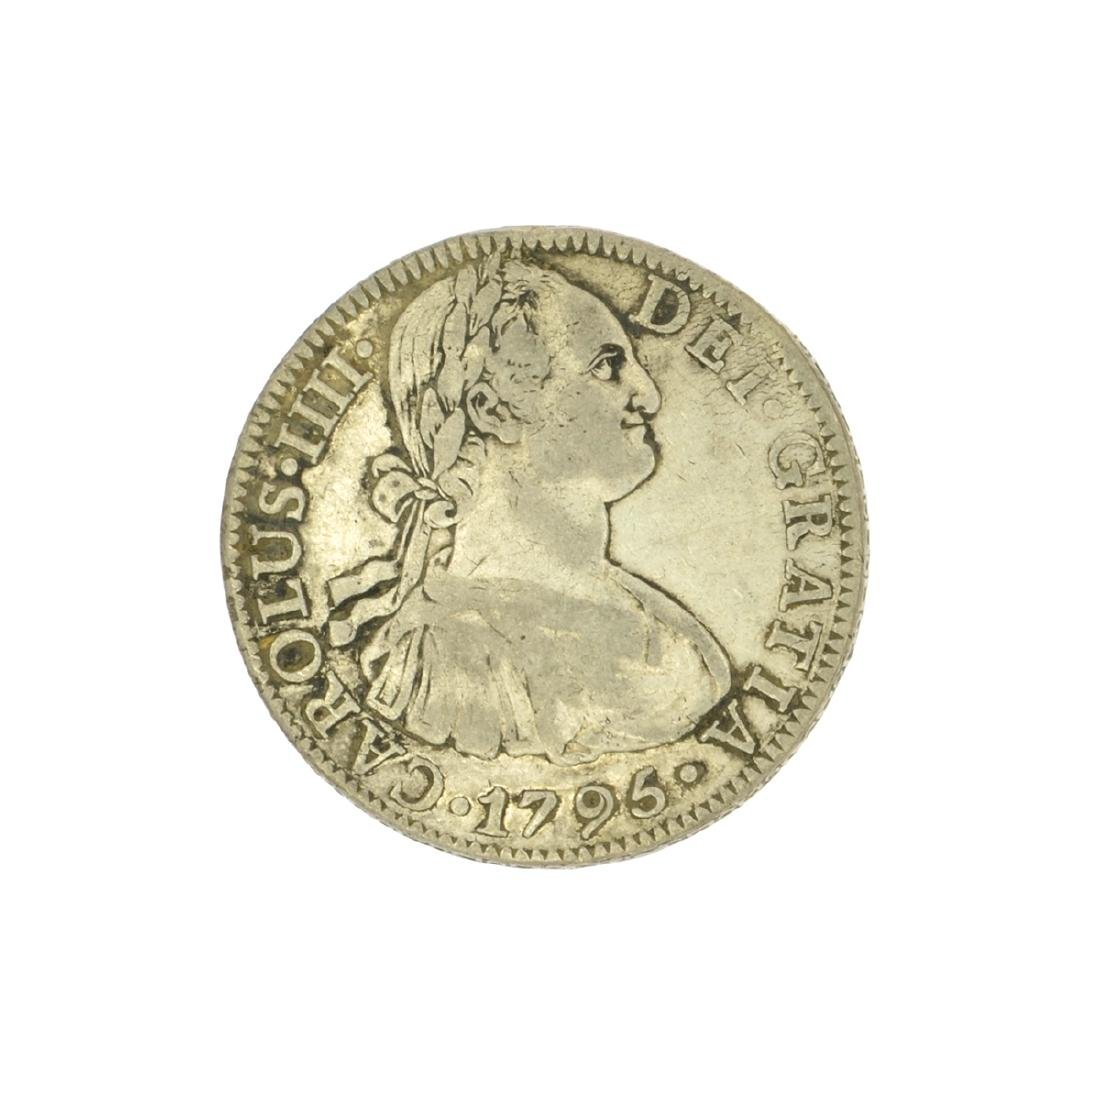 Extremely Rare Early Date 1795 Portrait Reales Very